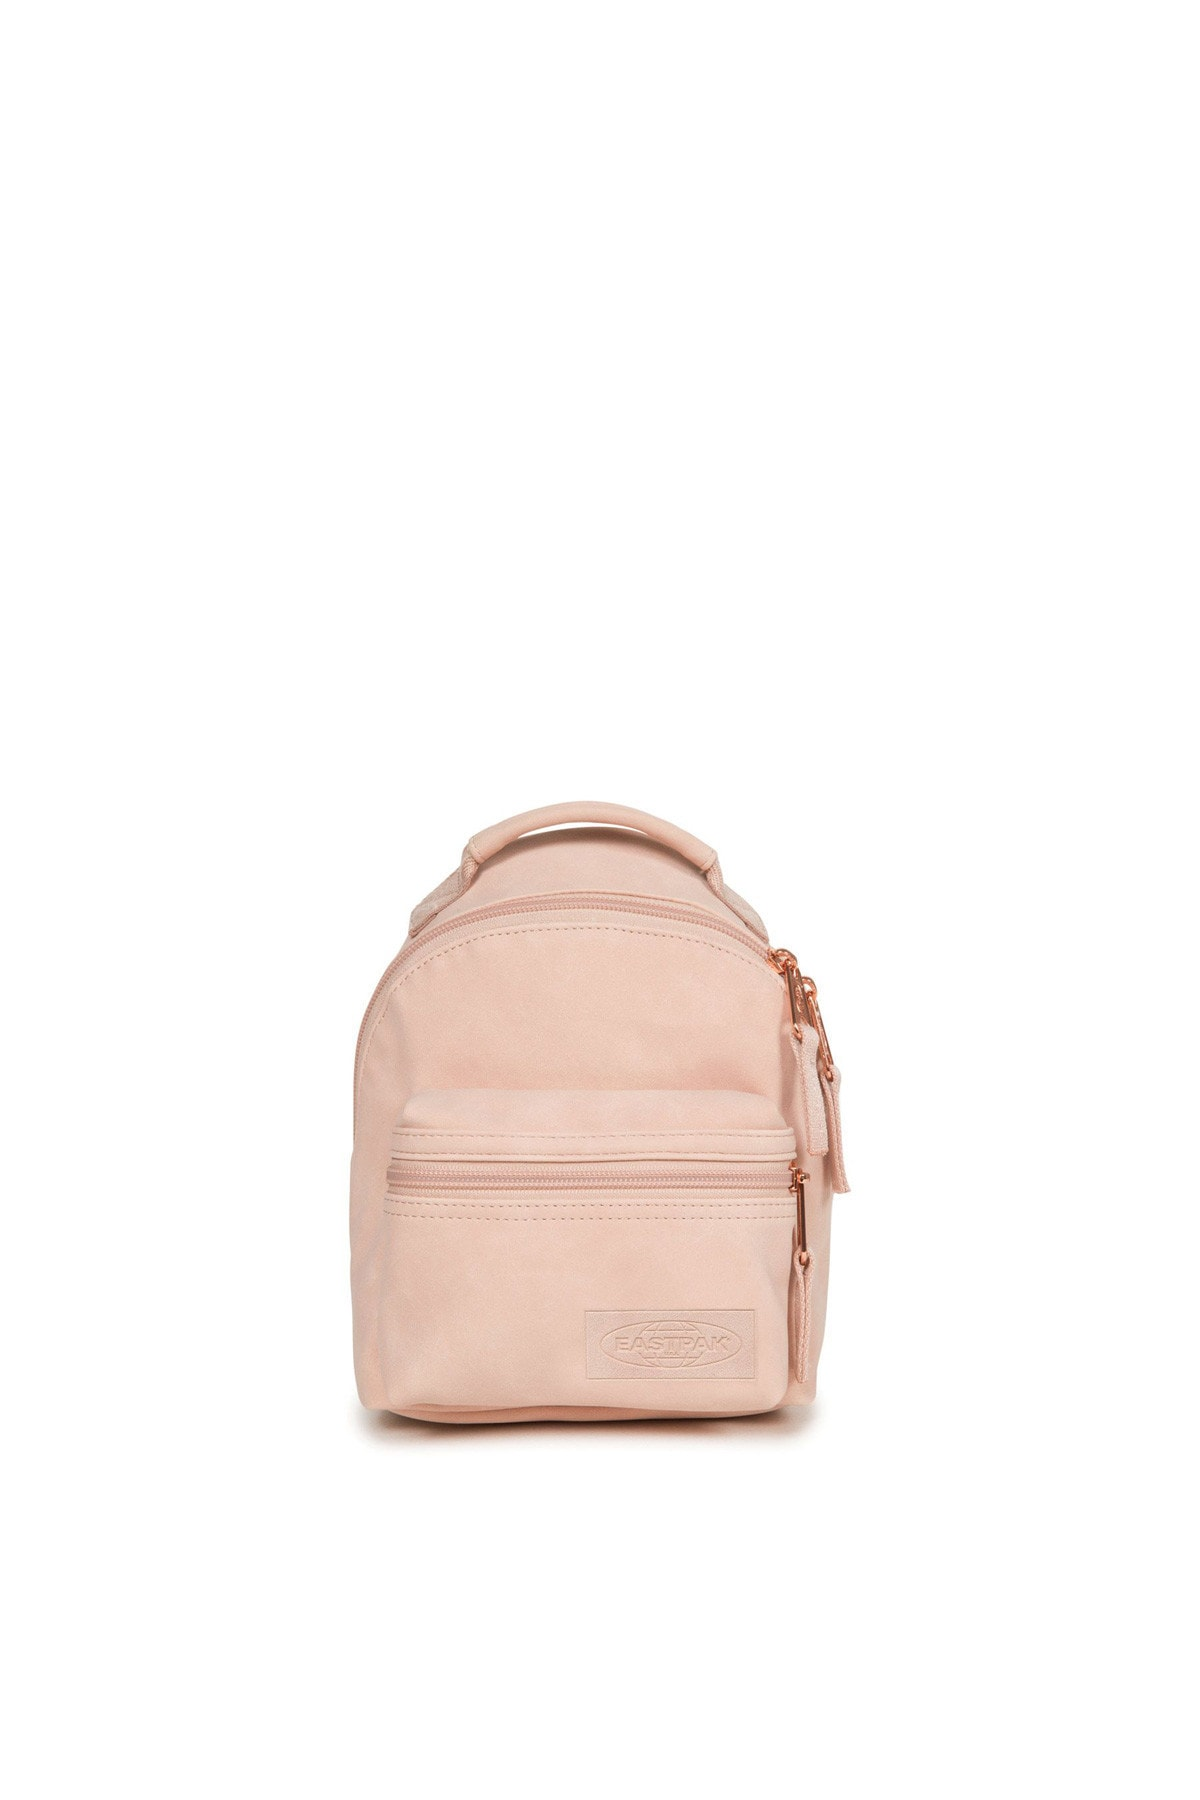 Eastpak Cross Orbit W Super Fashion Pink Sırt Çantası